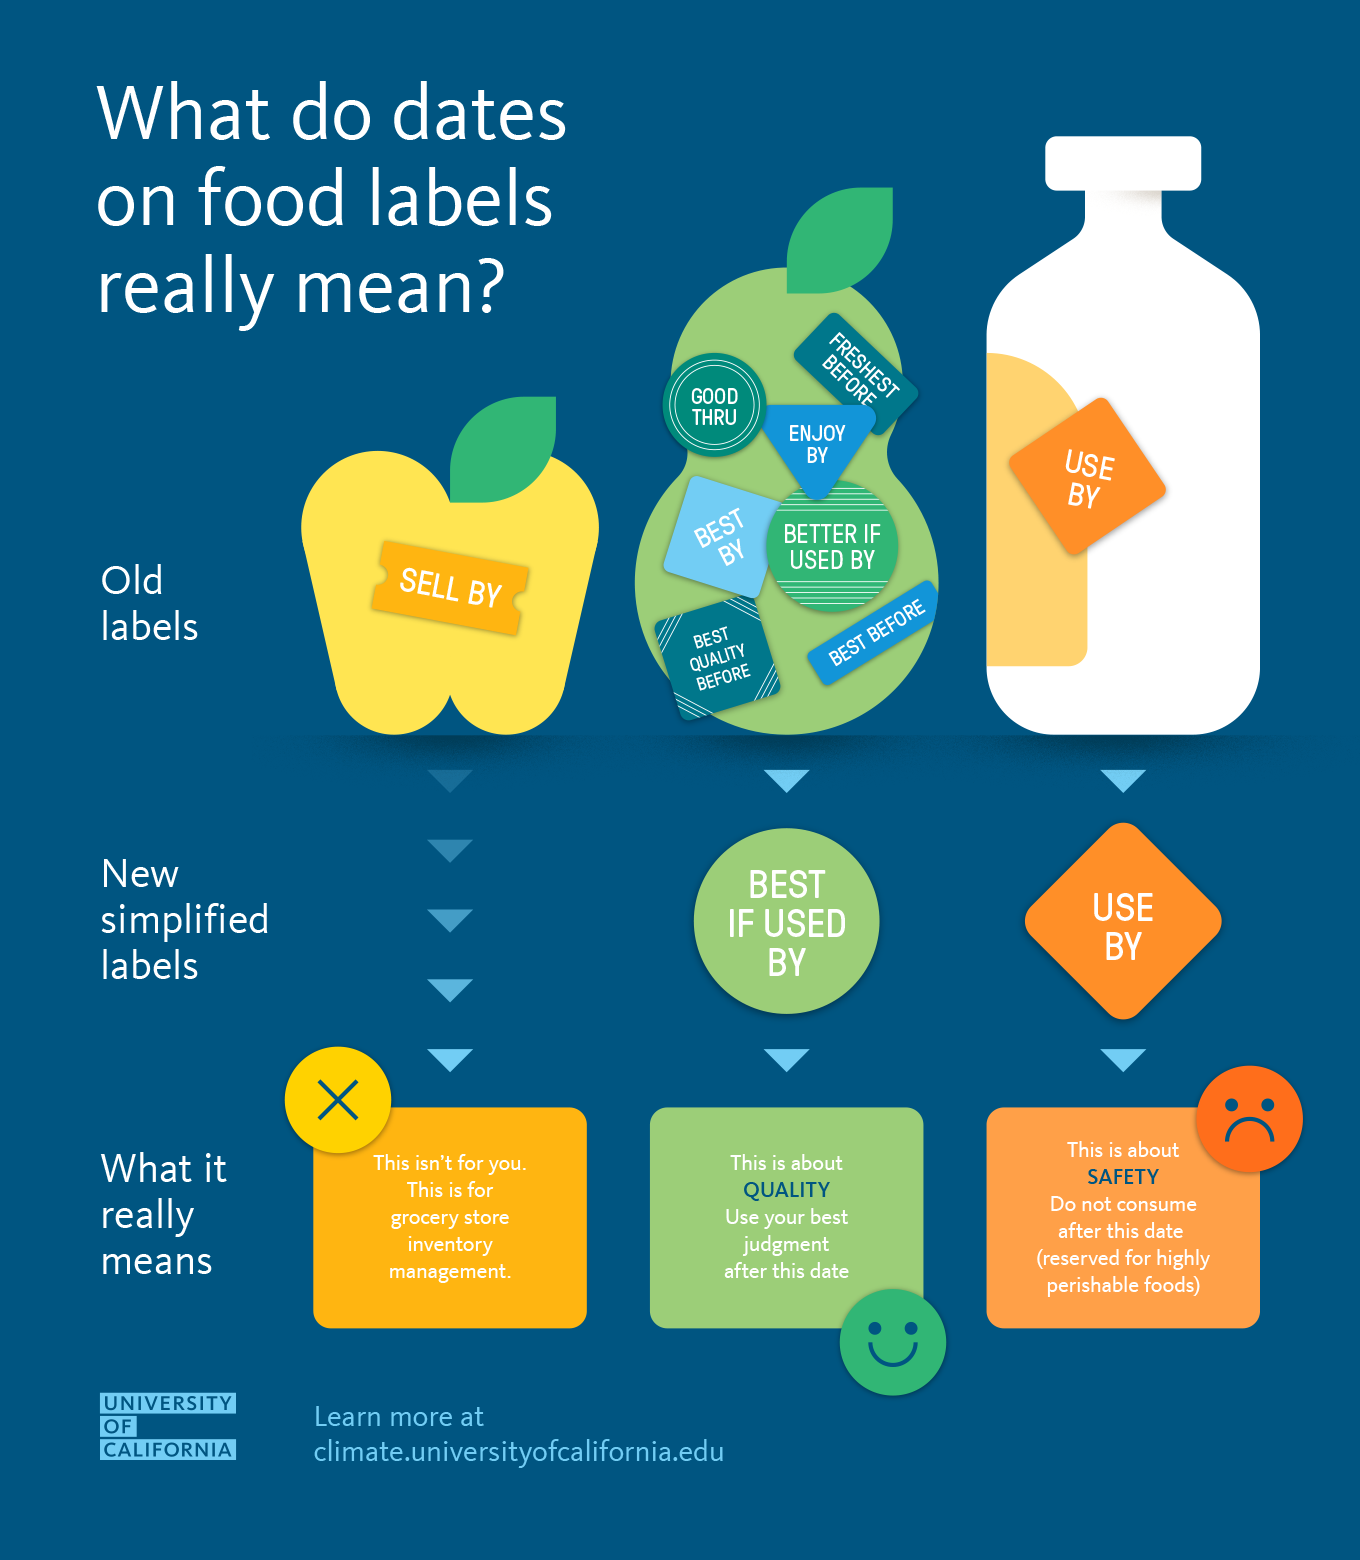 food dating stickers Ninety-one percent of americans toss their food after the date on the labels have passed, but in many cases, they may actually be wasting perfectly safe food there are three types of dates.